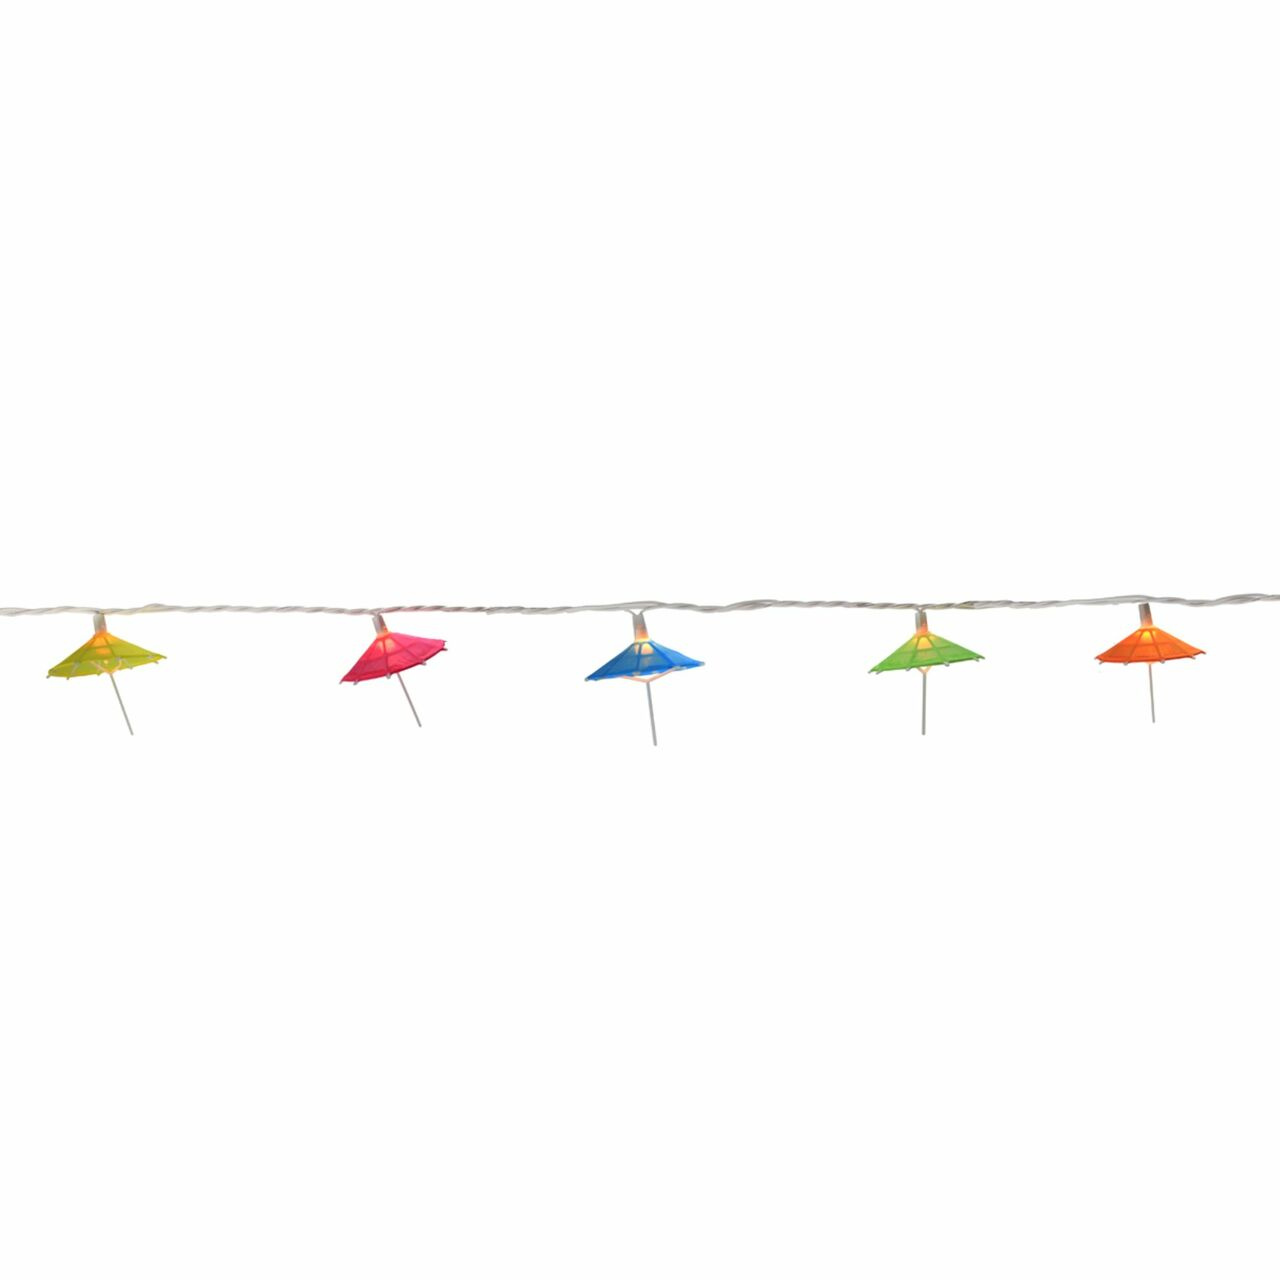 Set Of 10 Colorful Sun Umbrella Patio Garden Novelty Christmas Parallel Light Wiring Diagram And Lights White Wire 32208241